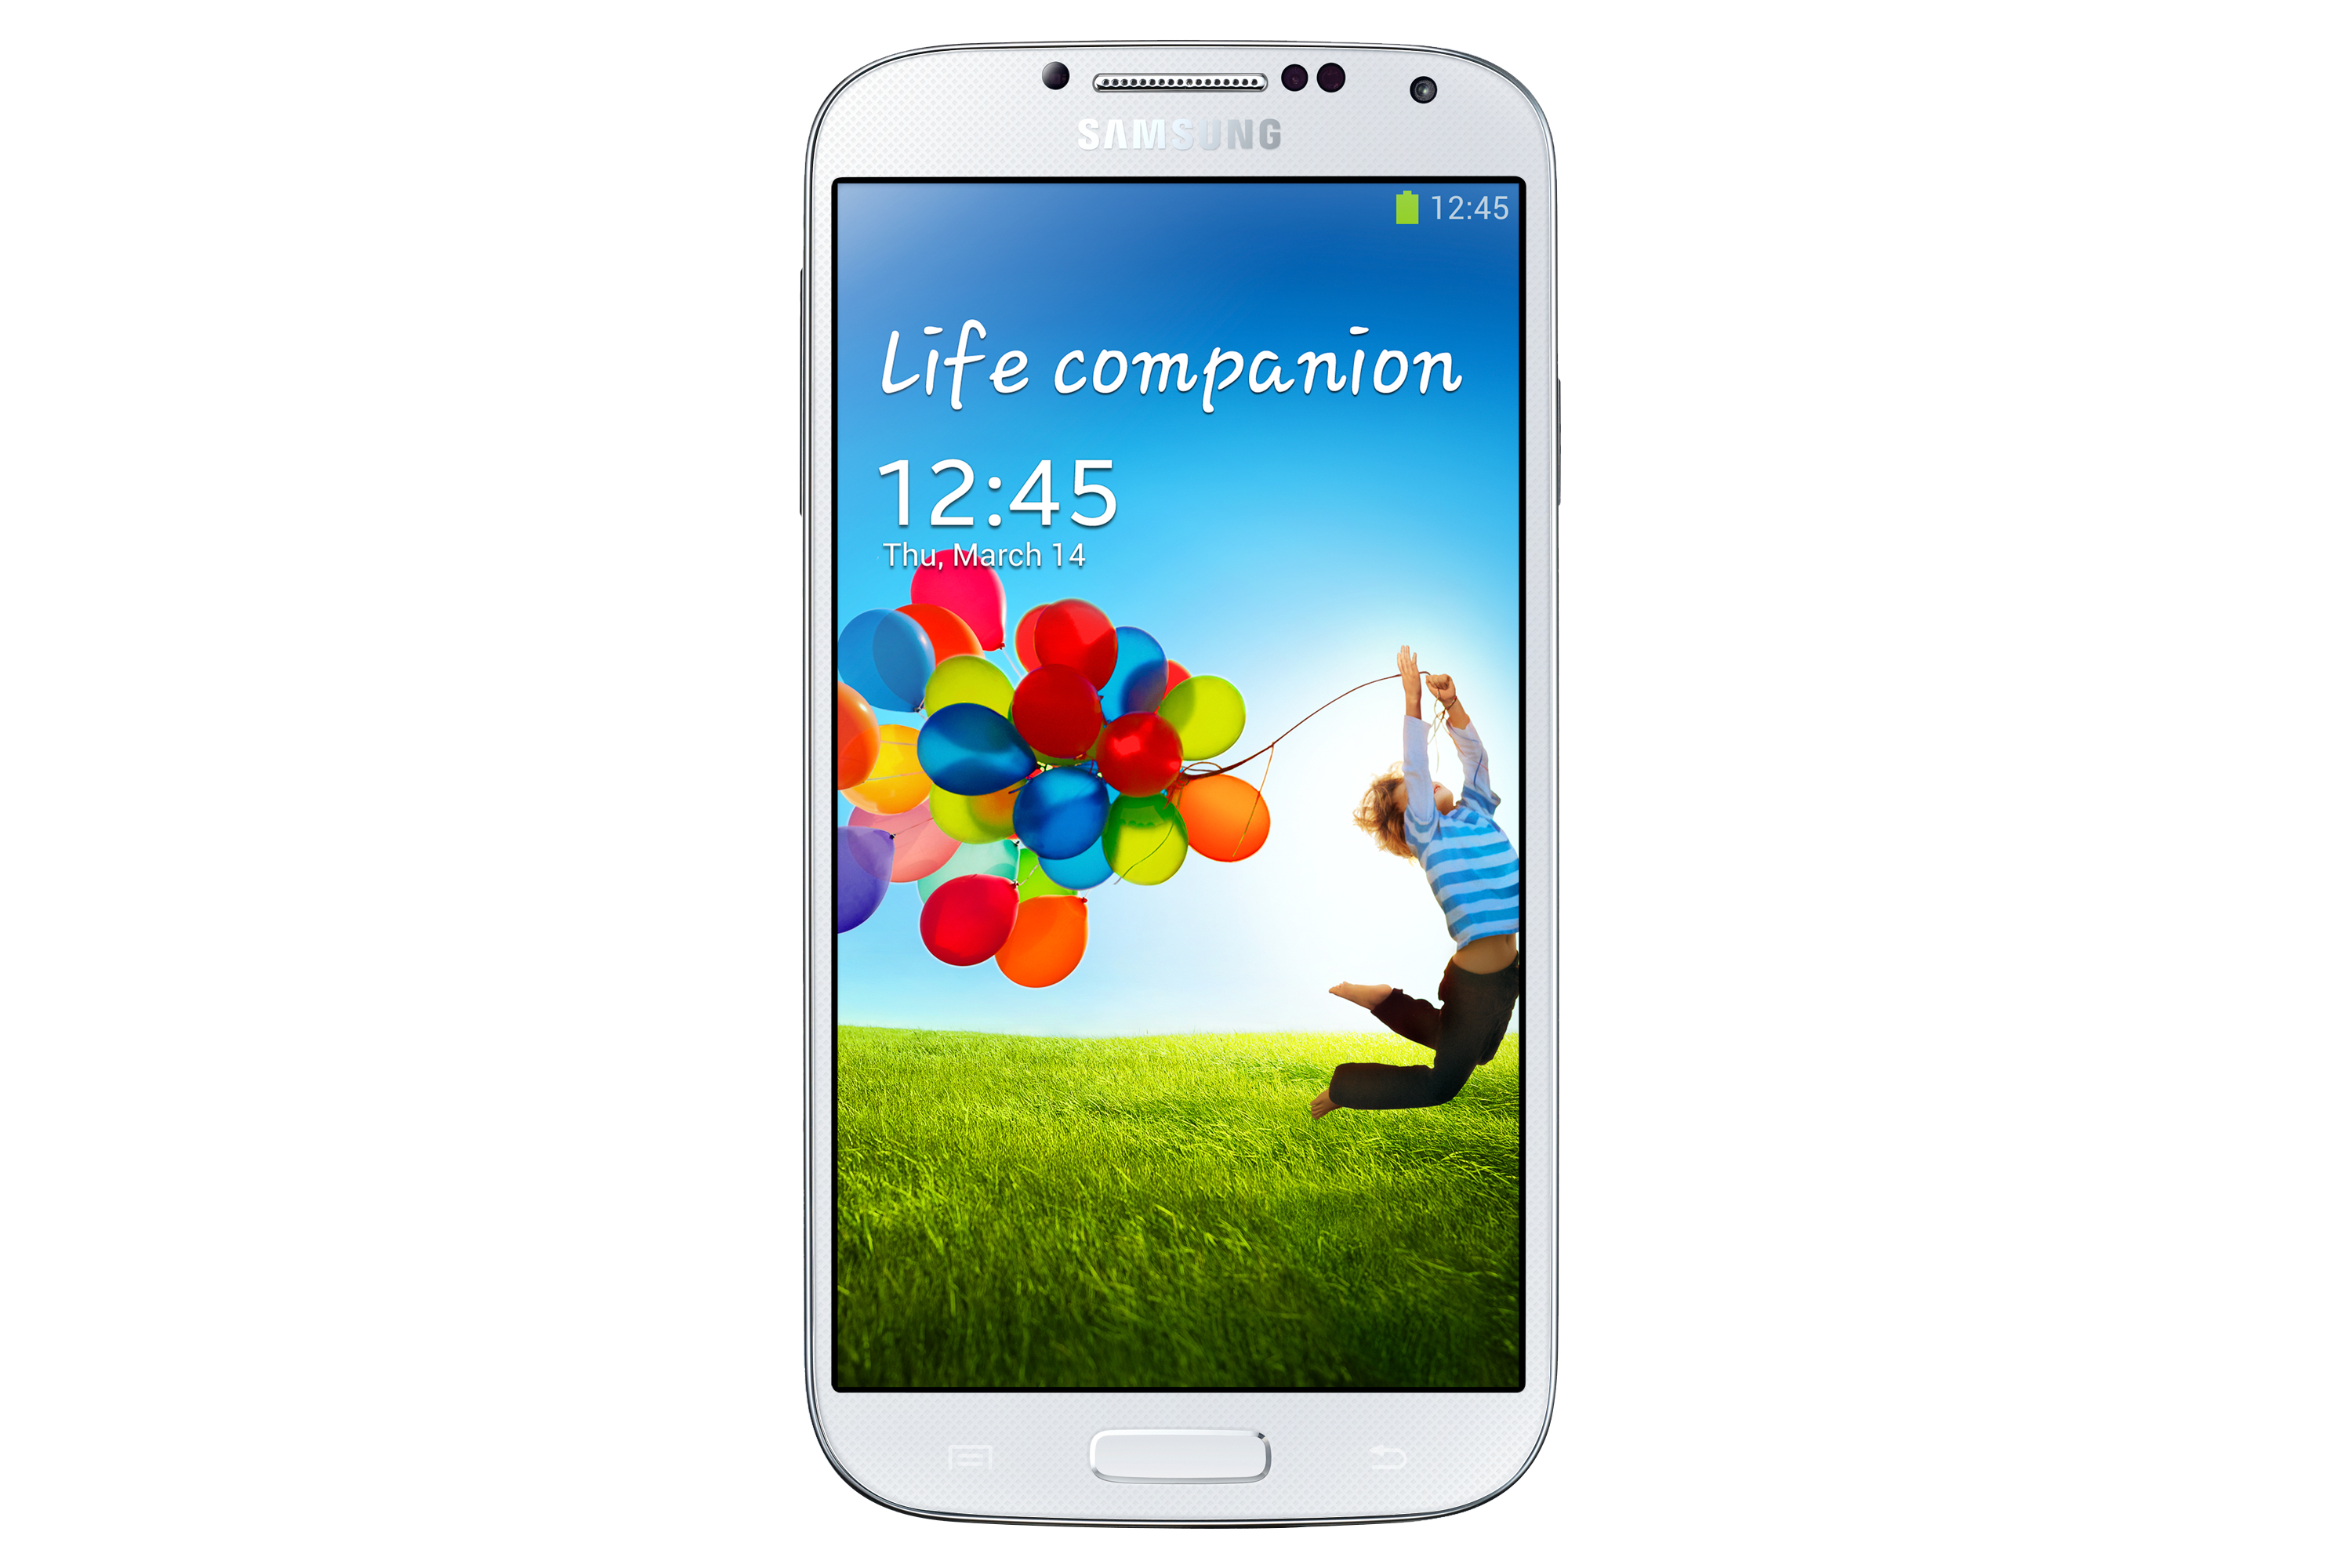 Galaxy S4: Dispositivo Multimedia. ¿Qué es?